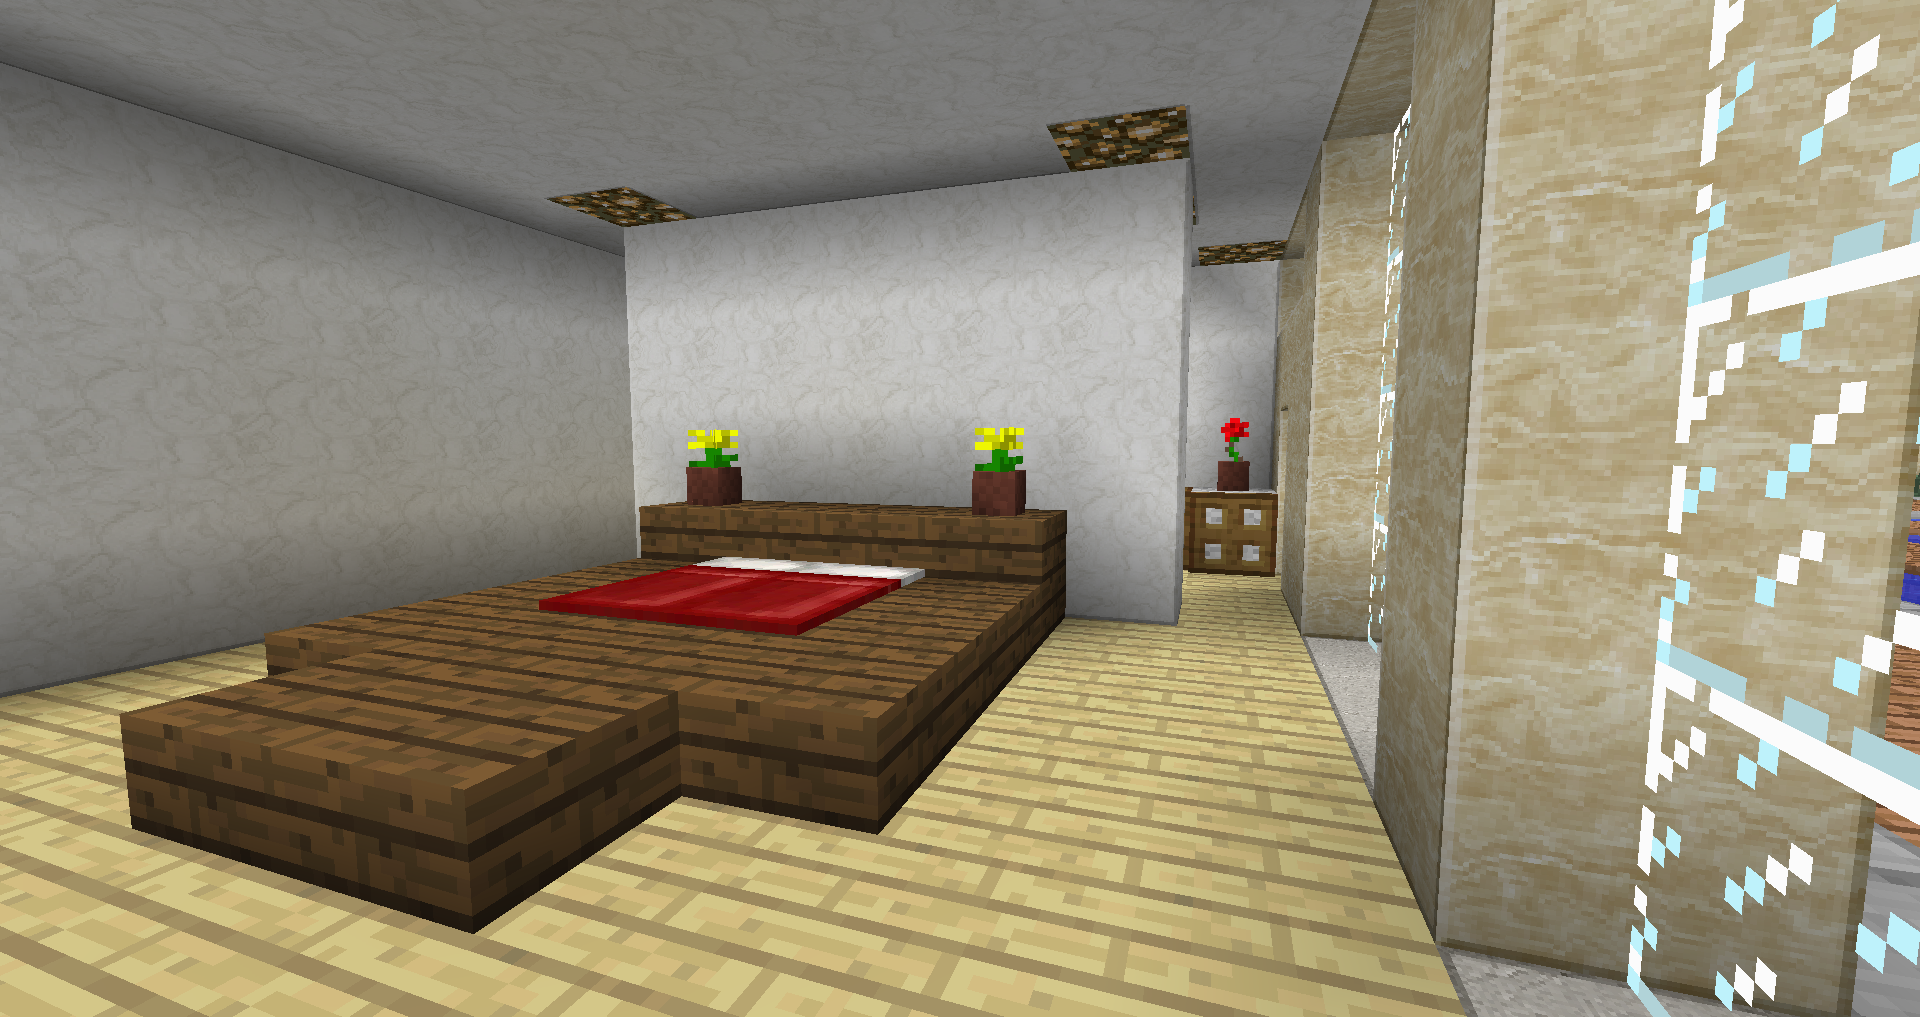 villa minecraft sur le forum minecraft 24 02 2013 22 16 23. Black Bedroom Furniture Sets. Home Design Ideas